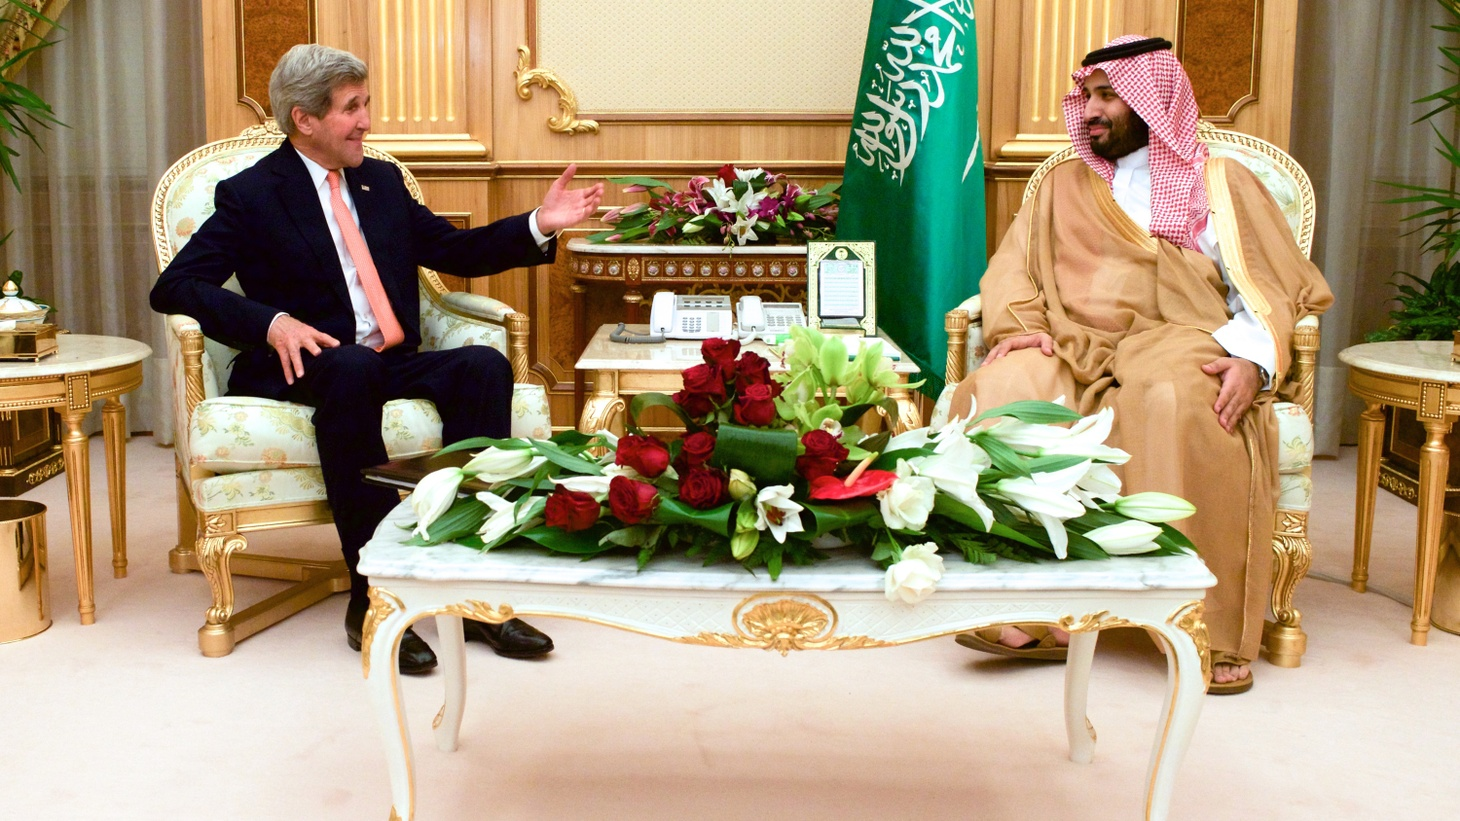 Saudi Arabia says it's leading a coalition of 34 Muslim nations in a fight against terror. That's welcome news to the US, but skeptics are asking if it's really as good as it sounds.